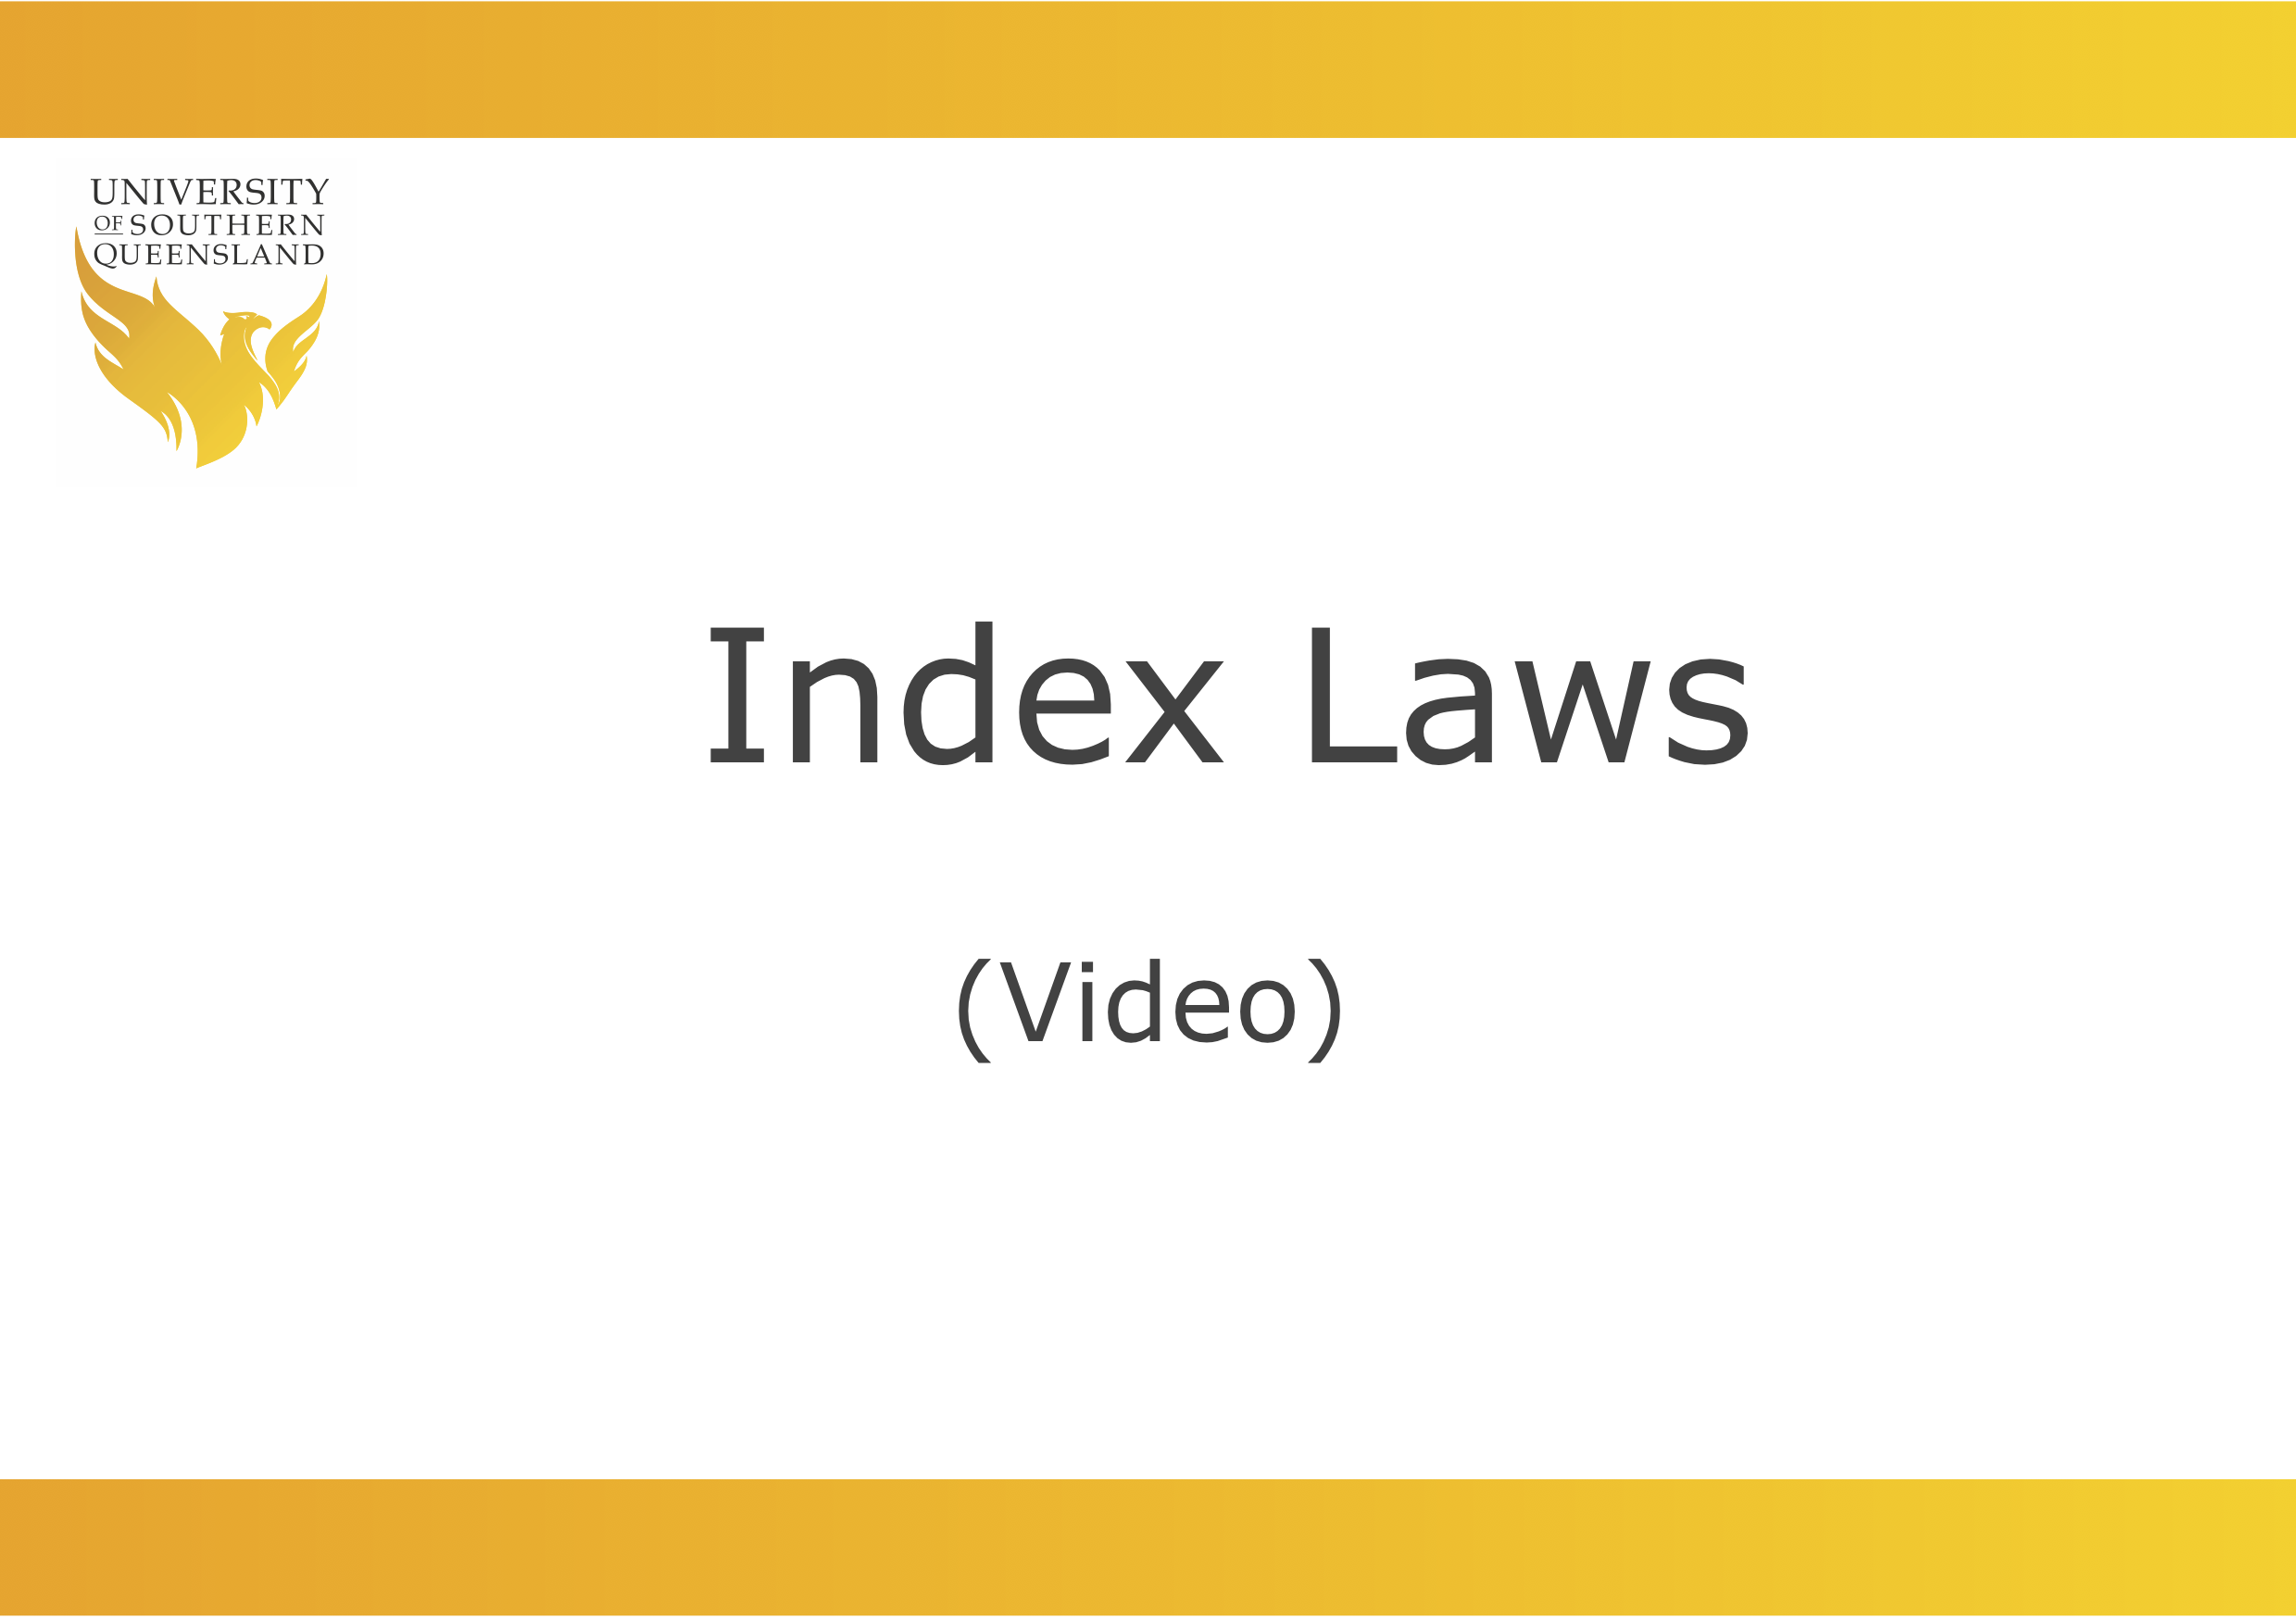 Index Laws video link